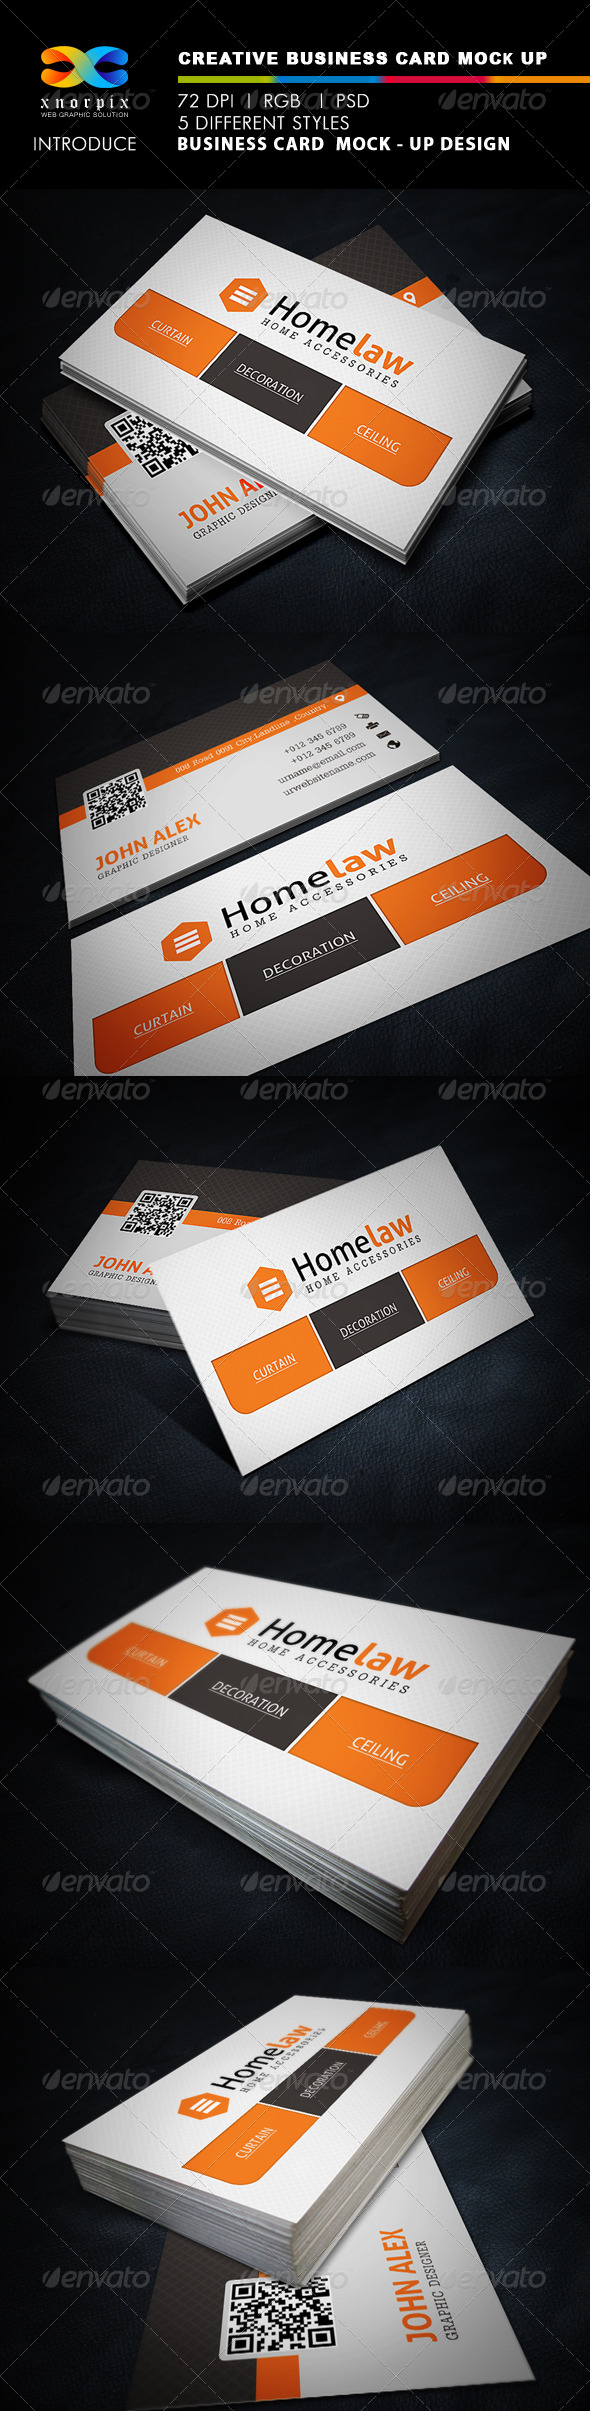 Creative Business Card Mock-up - Business Cards Print